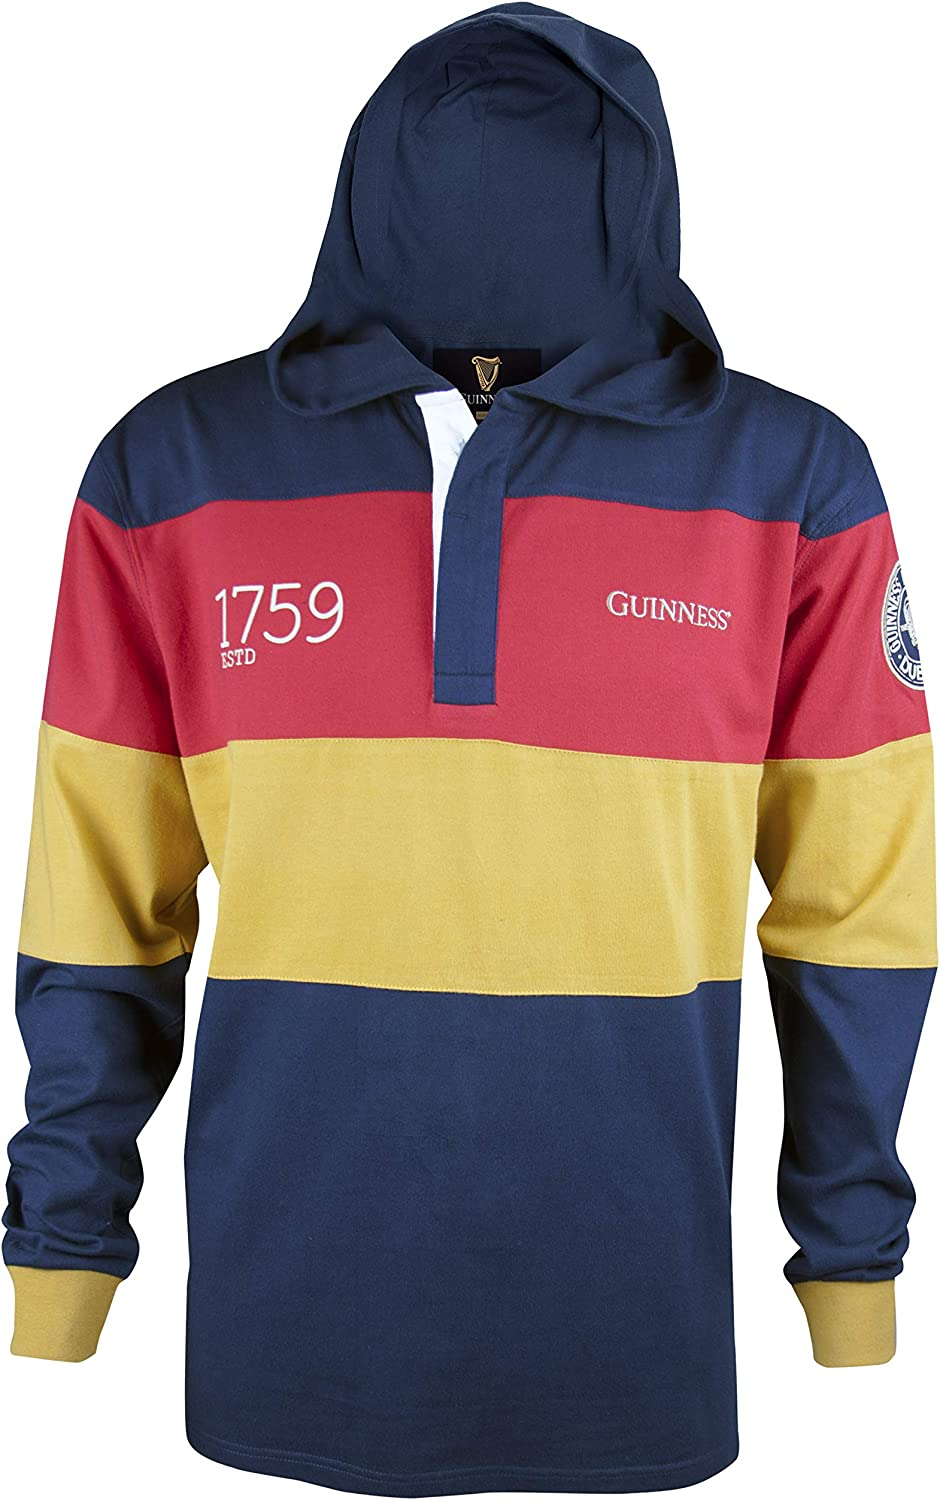 Guinness Navy Panelled Hooded Rugby Jersey